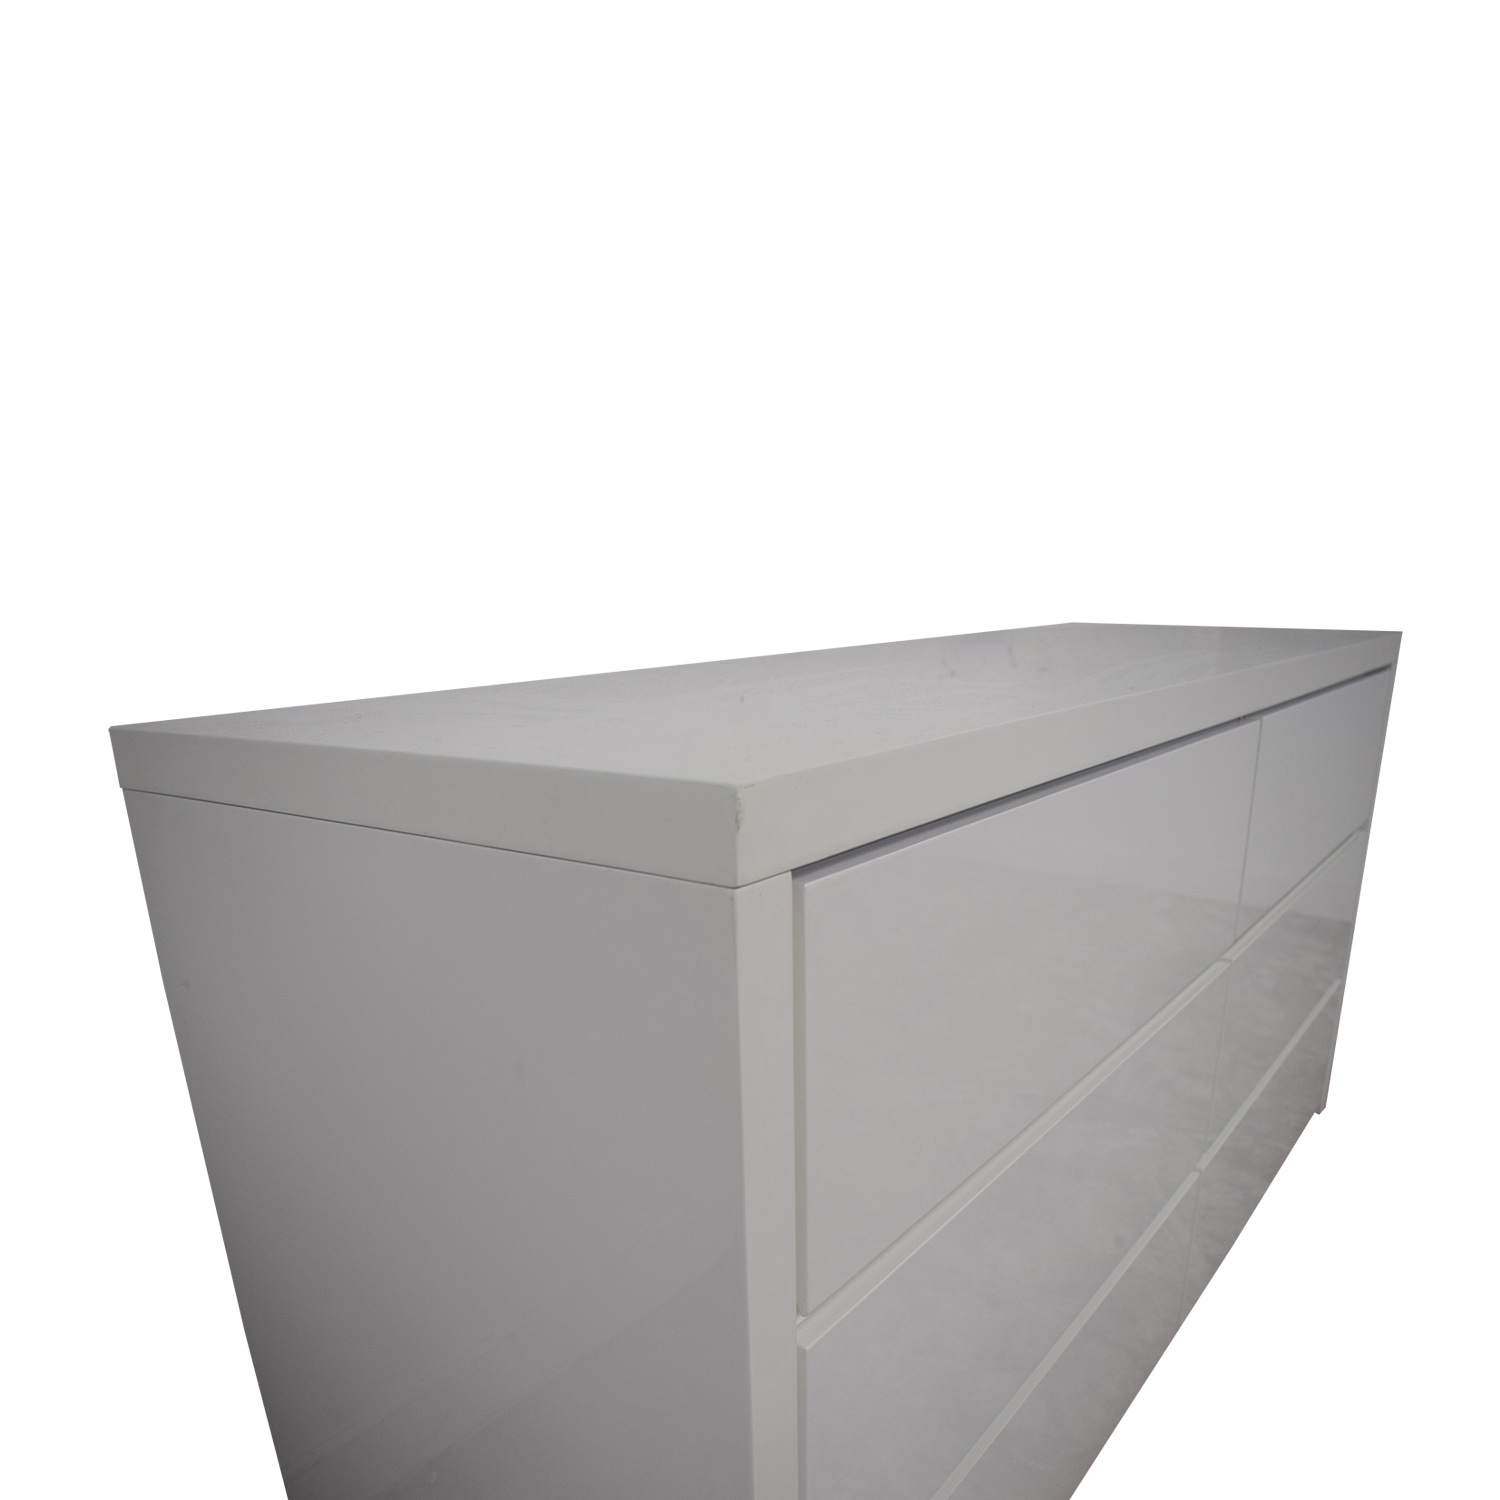 Modani Modani Dino White Six-Drawer Dresser on sale